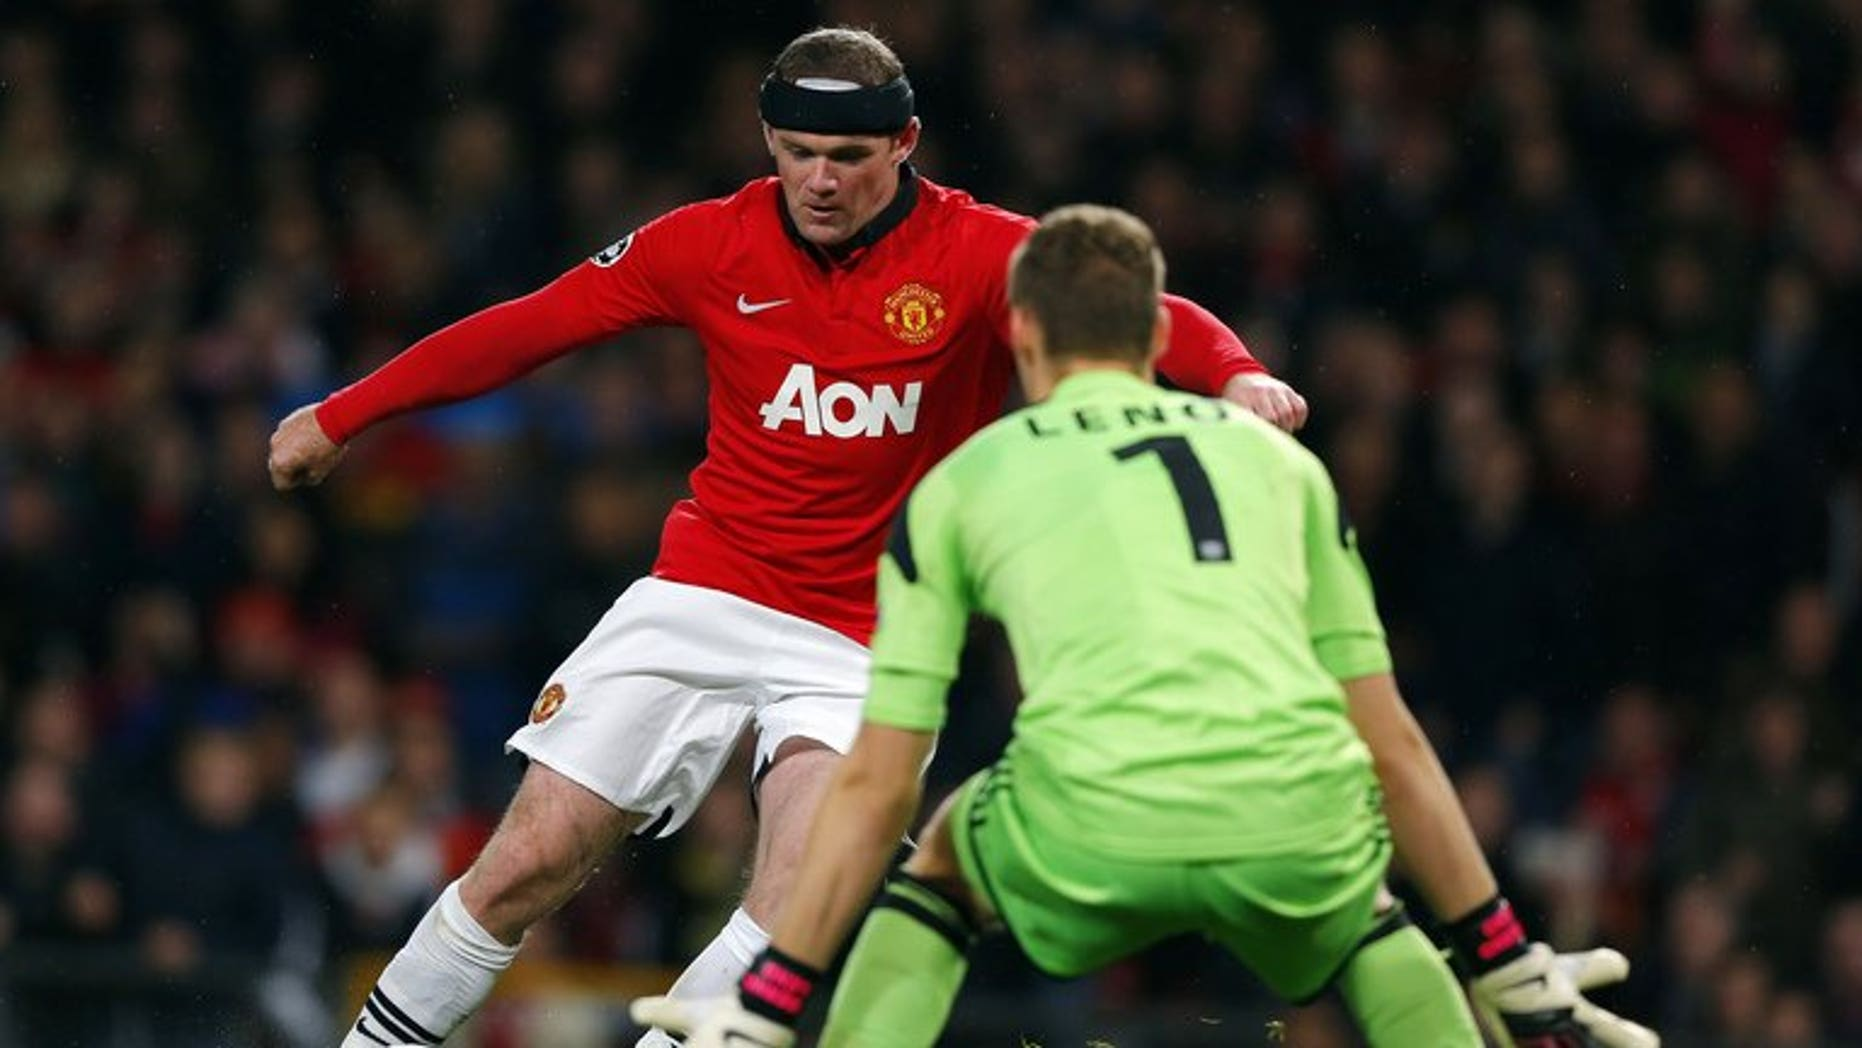 Manchester United's Wayne Rooney (left) and Bayer Leverkusen's Bernd Leno at Old Trafford, September 17, 2013. Rooney was never close to joining Chelsea in the summer because Manchester United would not have sold him, former chief executive David Gill said Sunday.